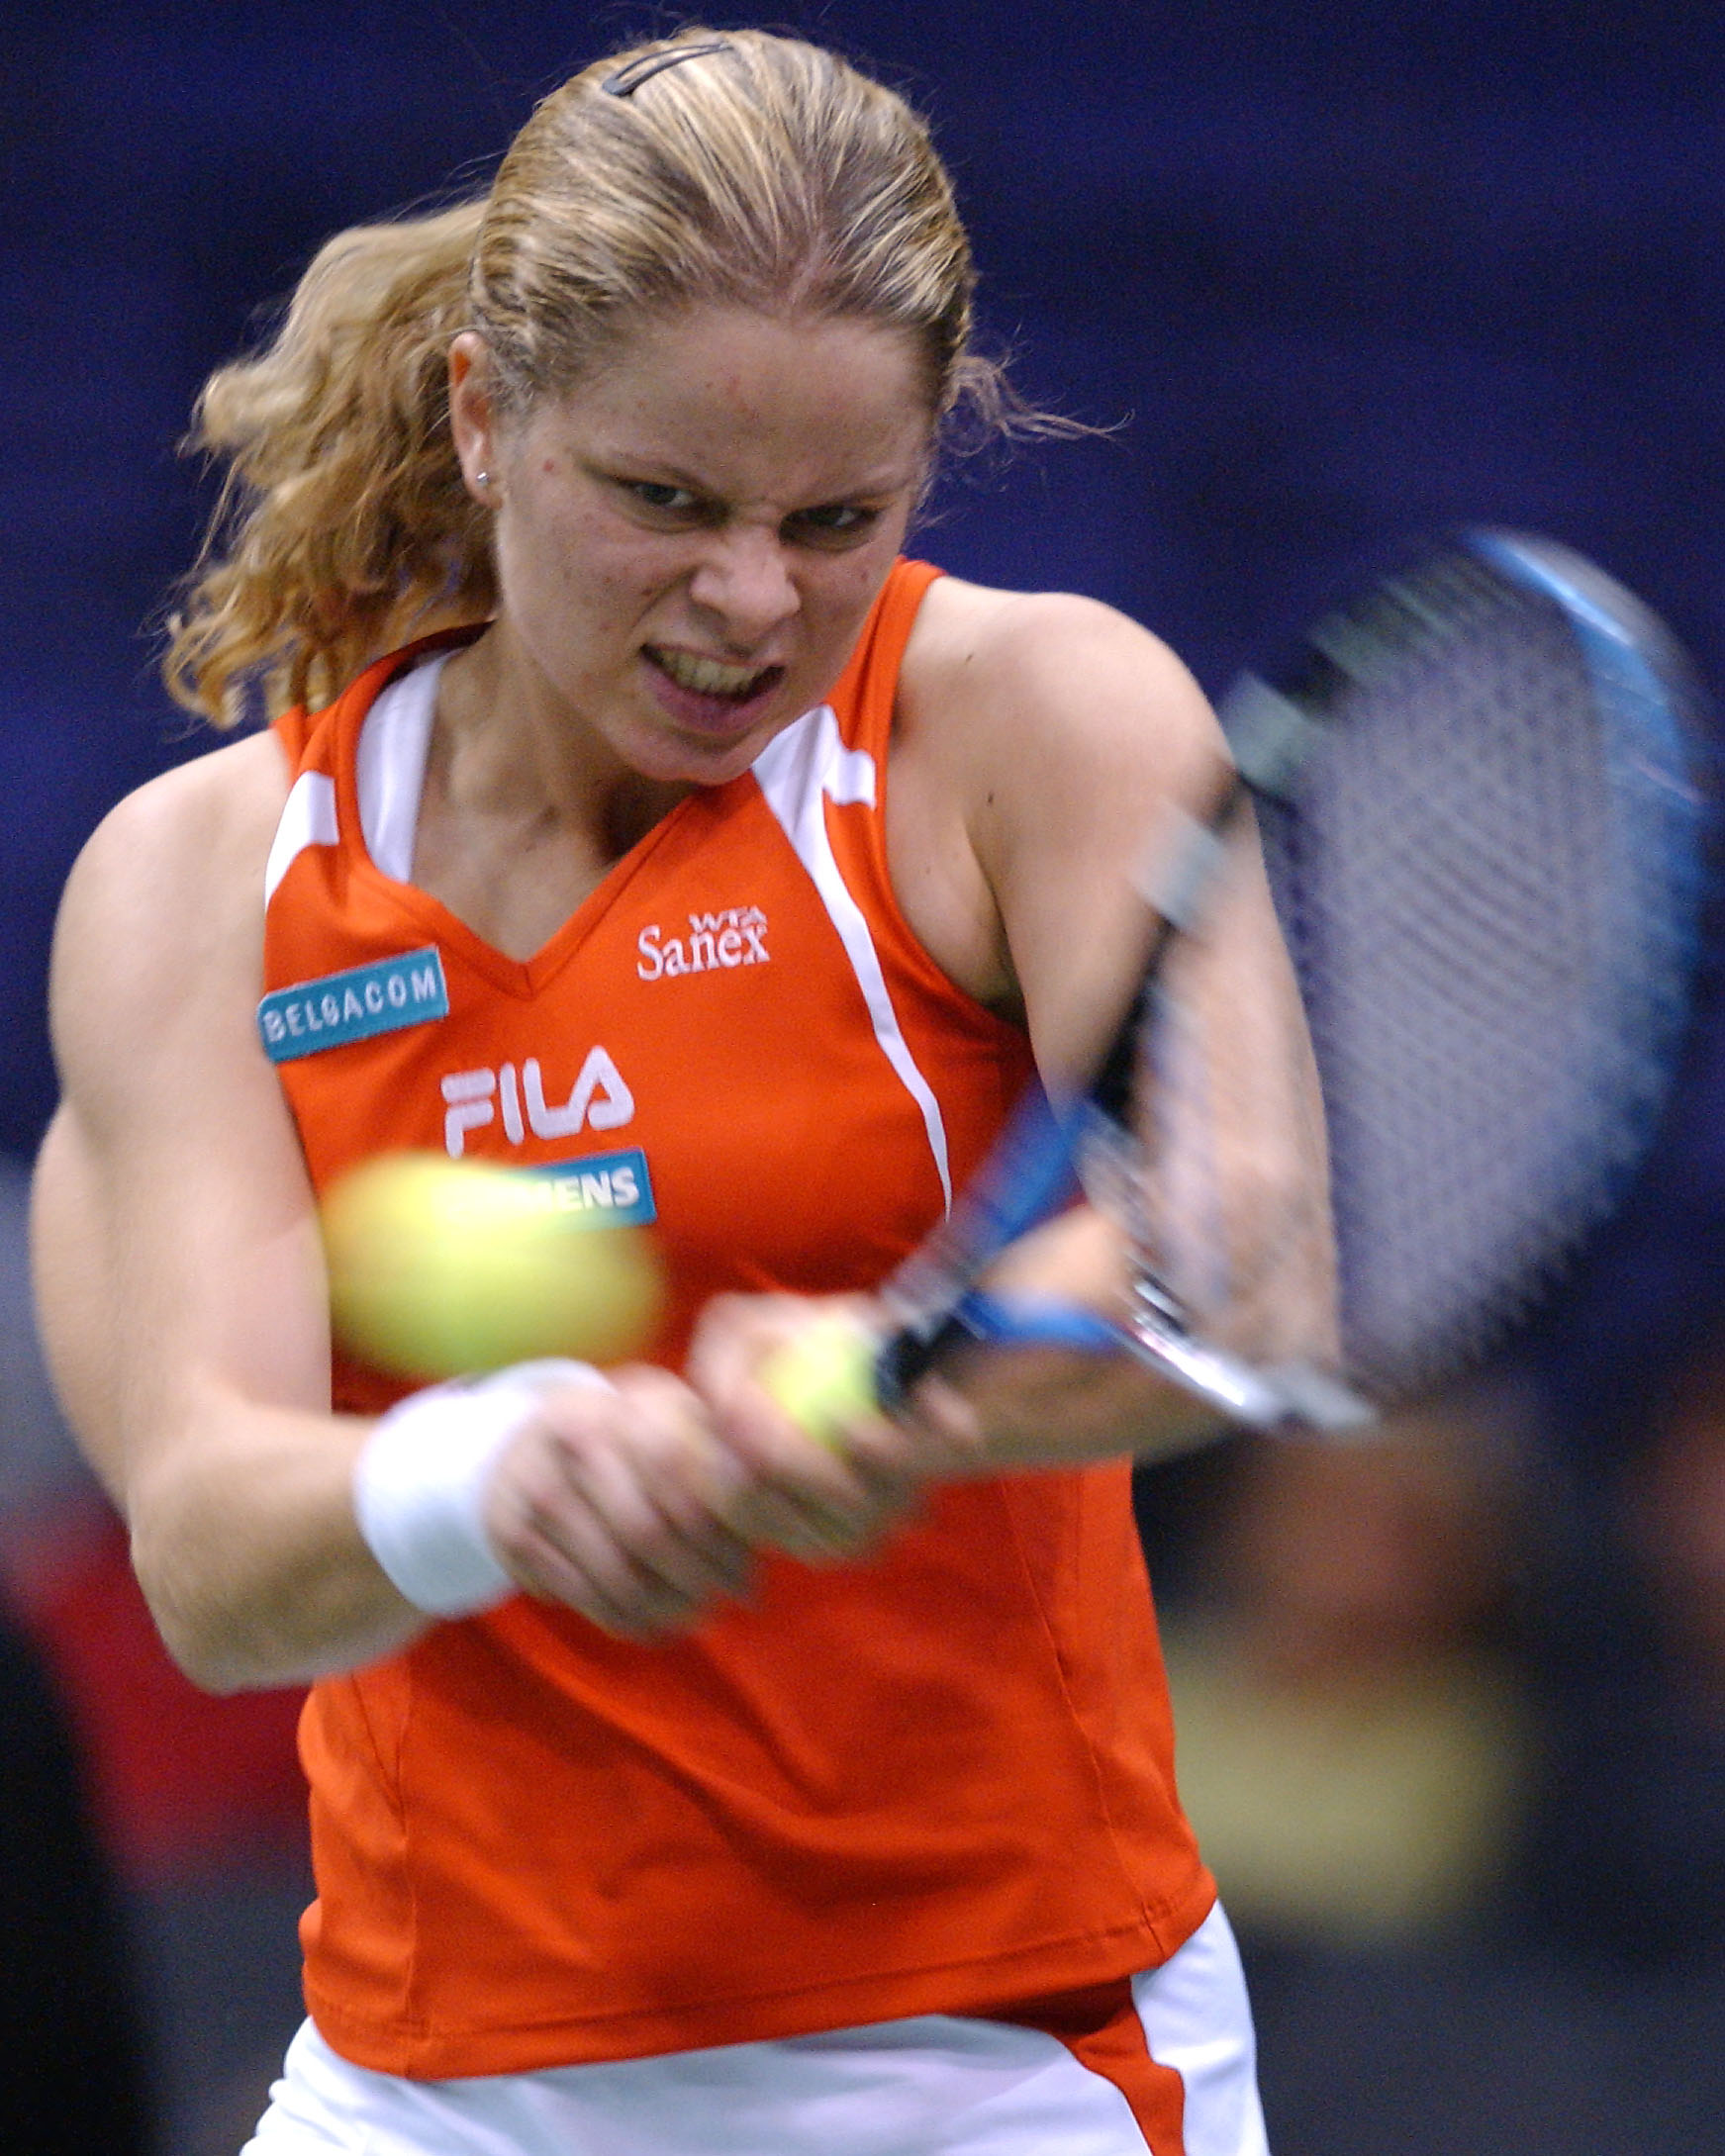 Kim Clijsters stuns No. 1 Serena Williams, who had won three majors that year, to win her first WTA Finals title.